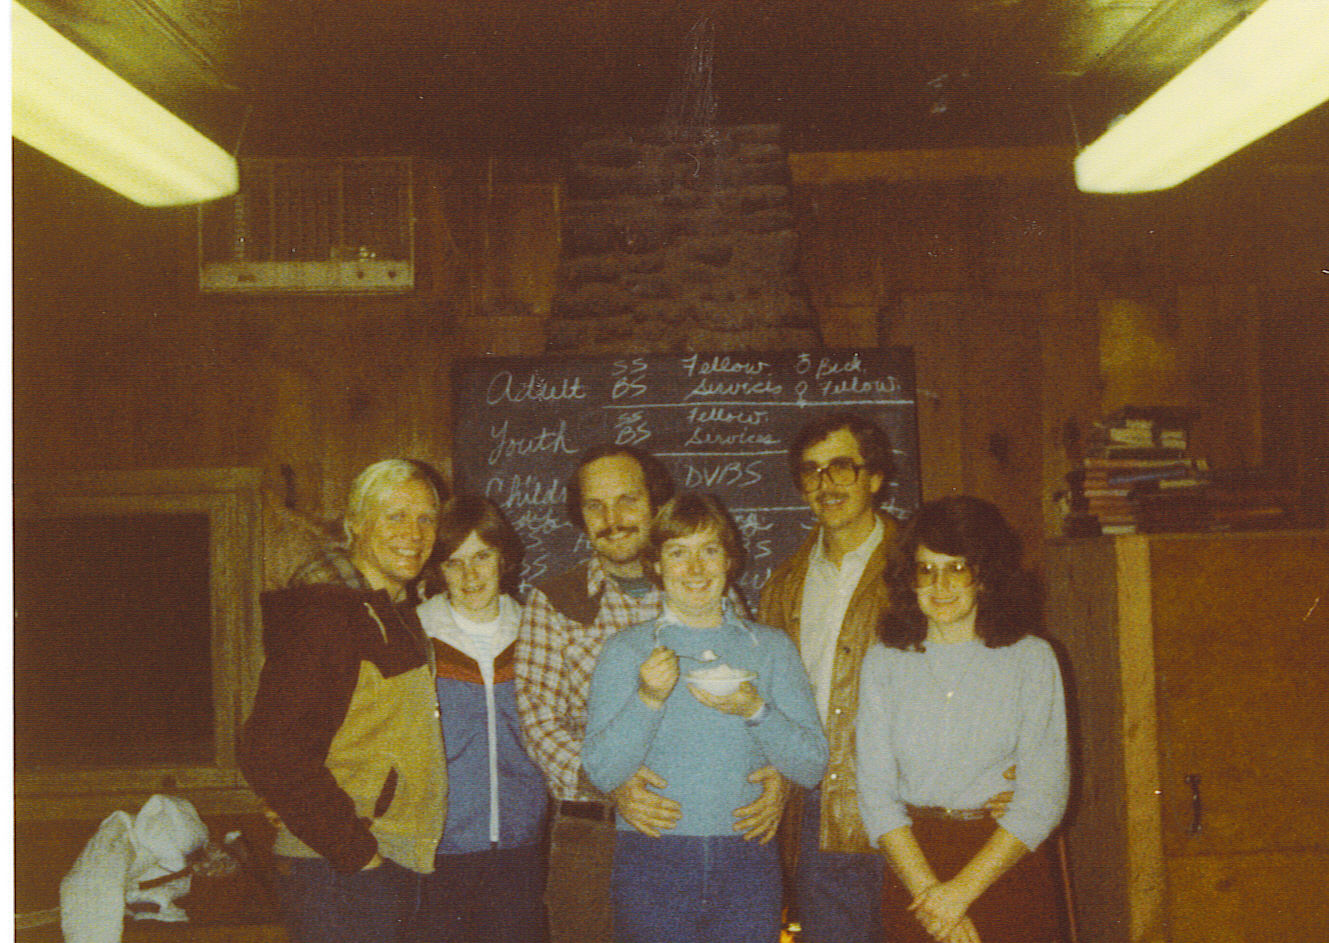 MBC Leadership planning retreat 1983